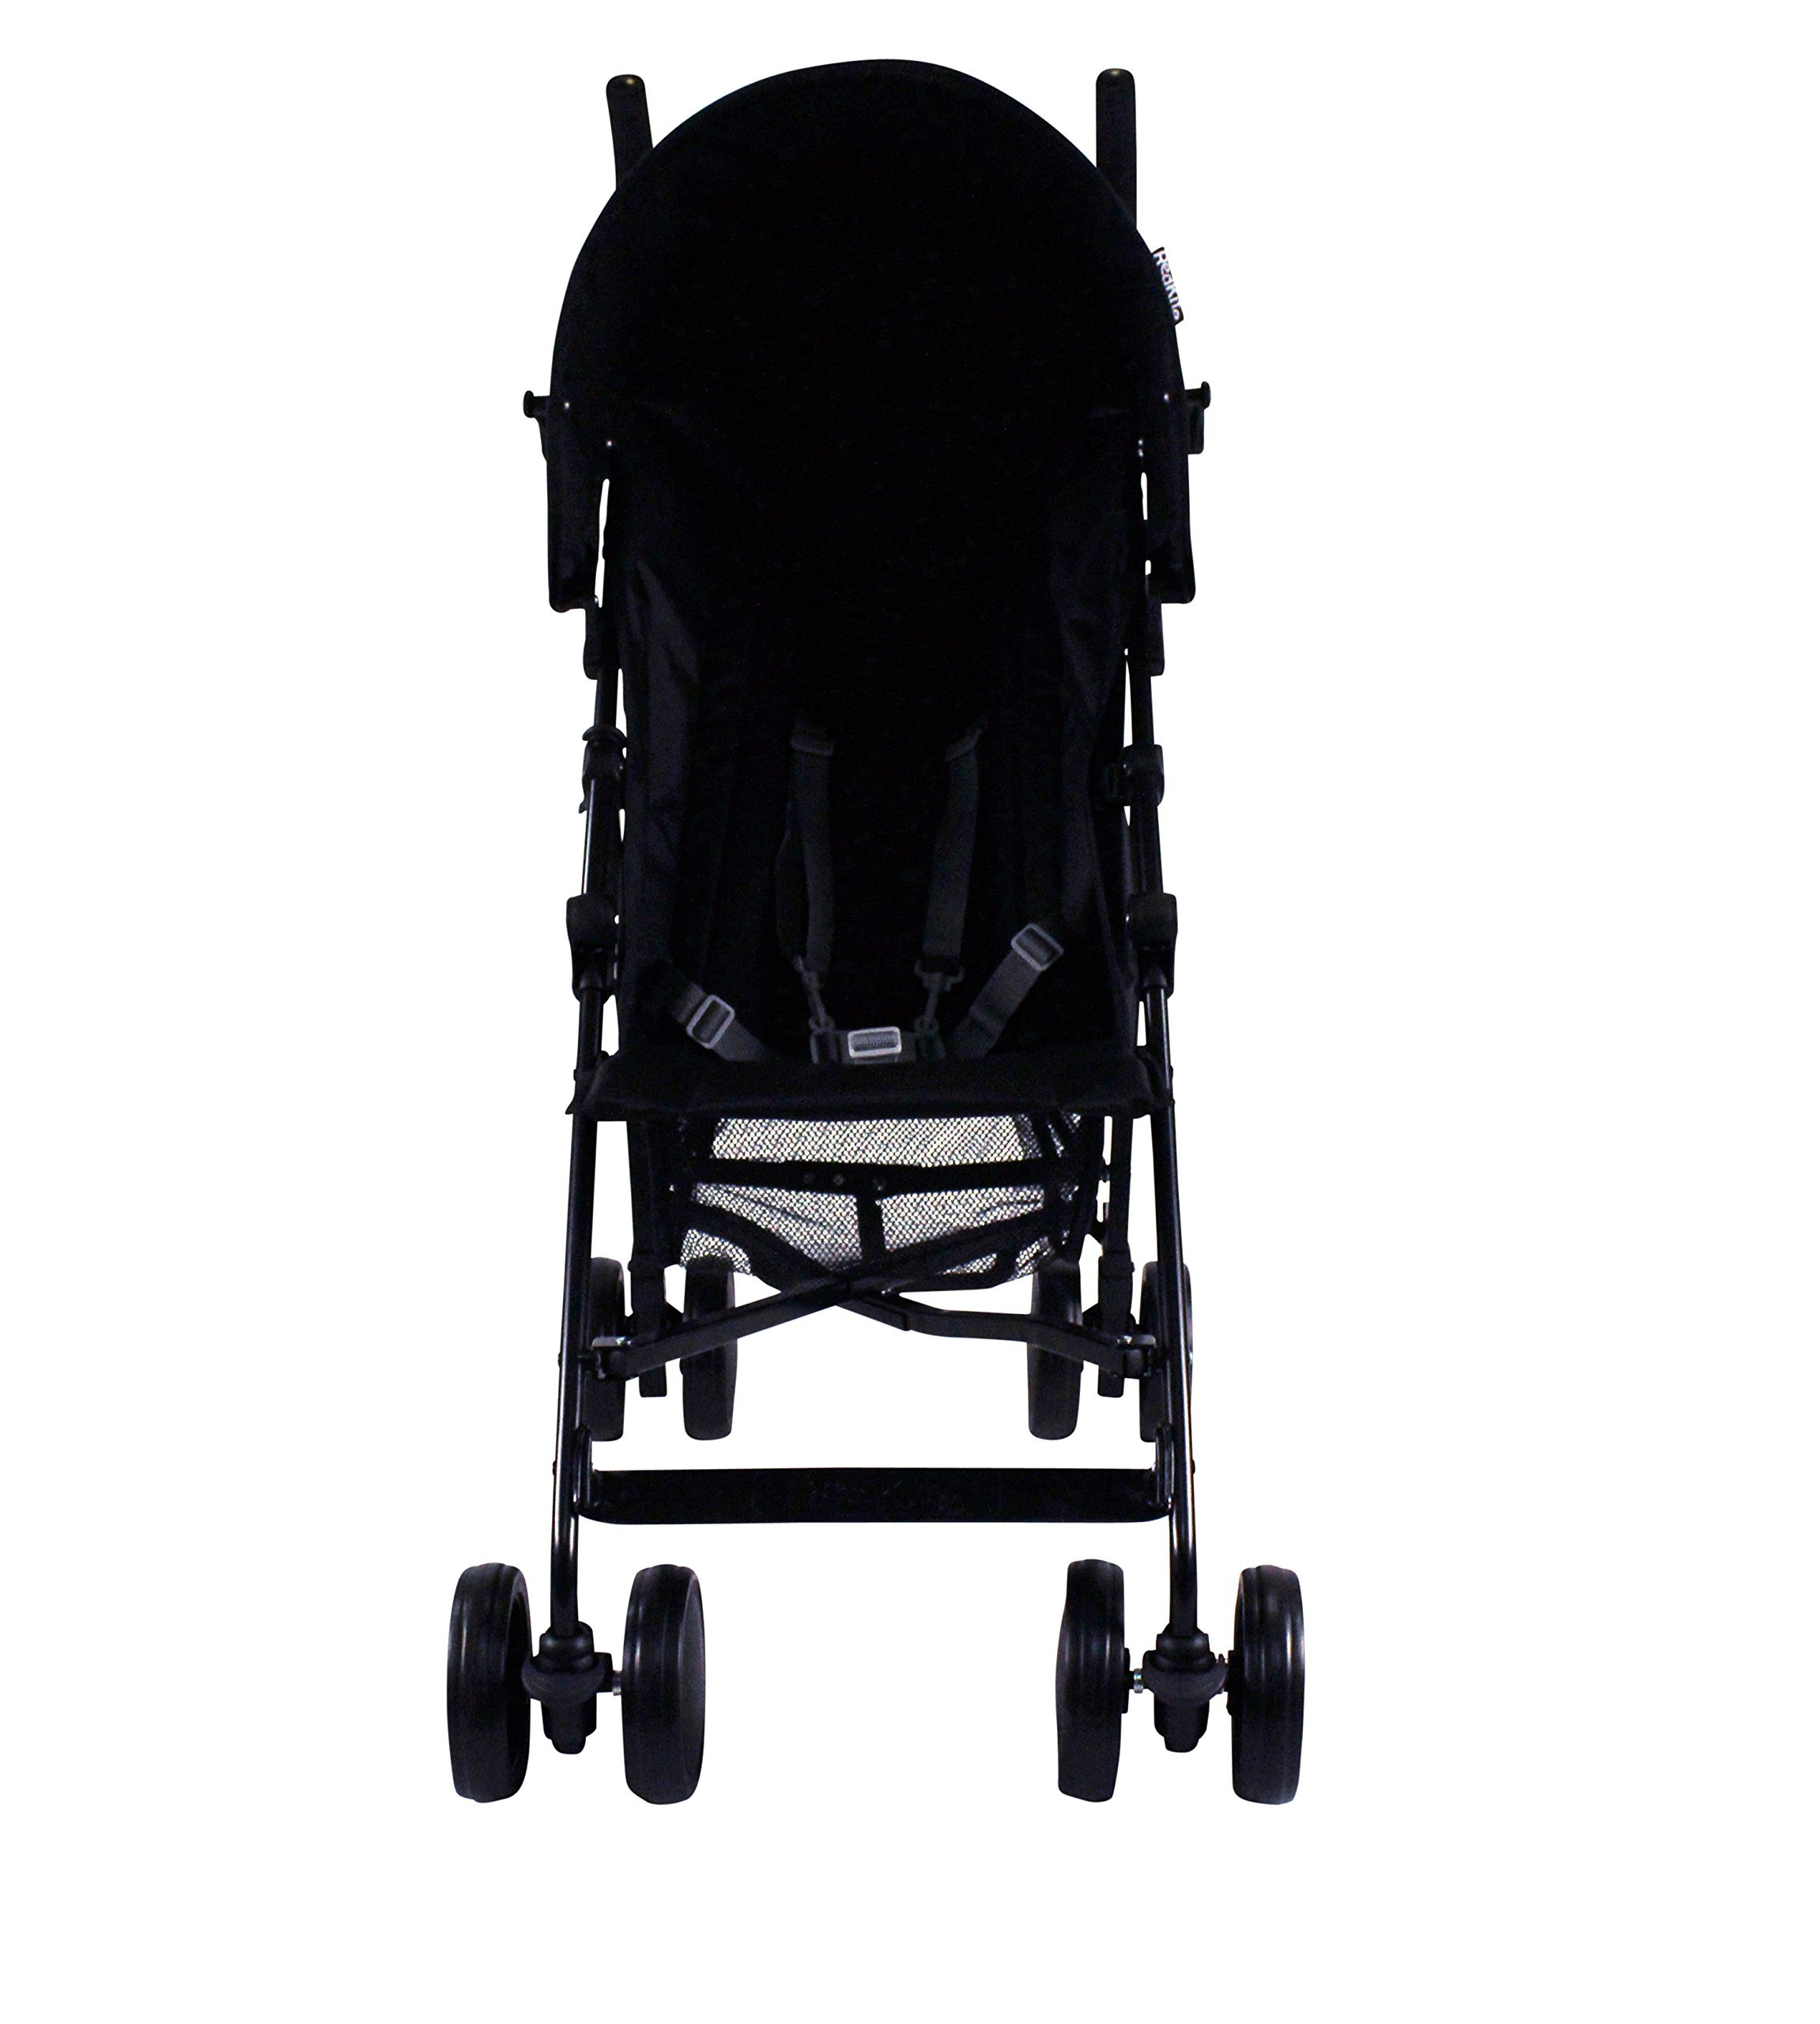 Red Kite Baby Push Me 2U (Midnight) Red Kite Baby Suitable from 6 months Includes shopping basket and raincover Lockable front swivel wheels. Detachable hood 2